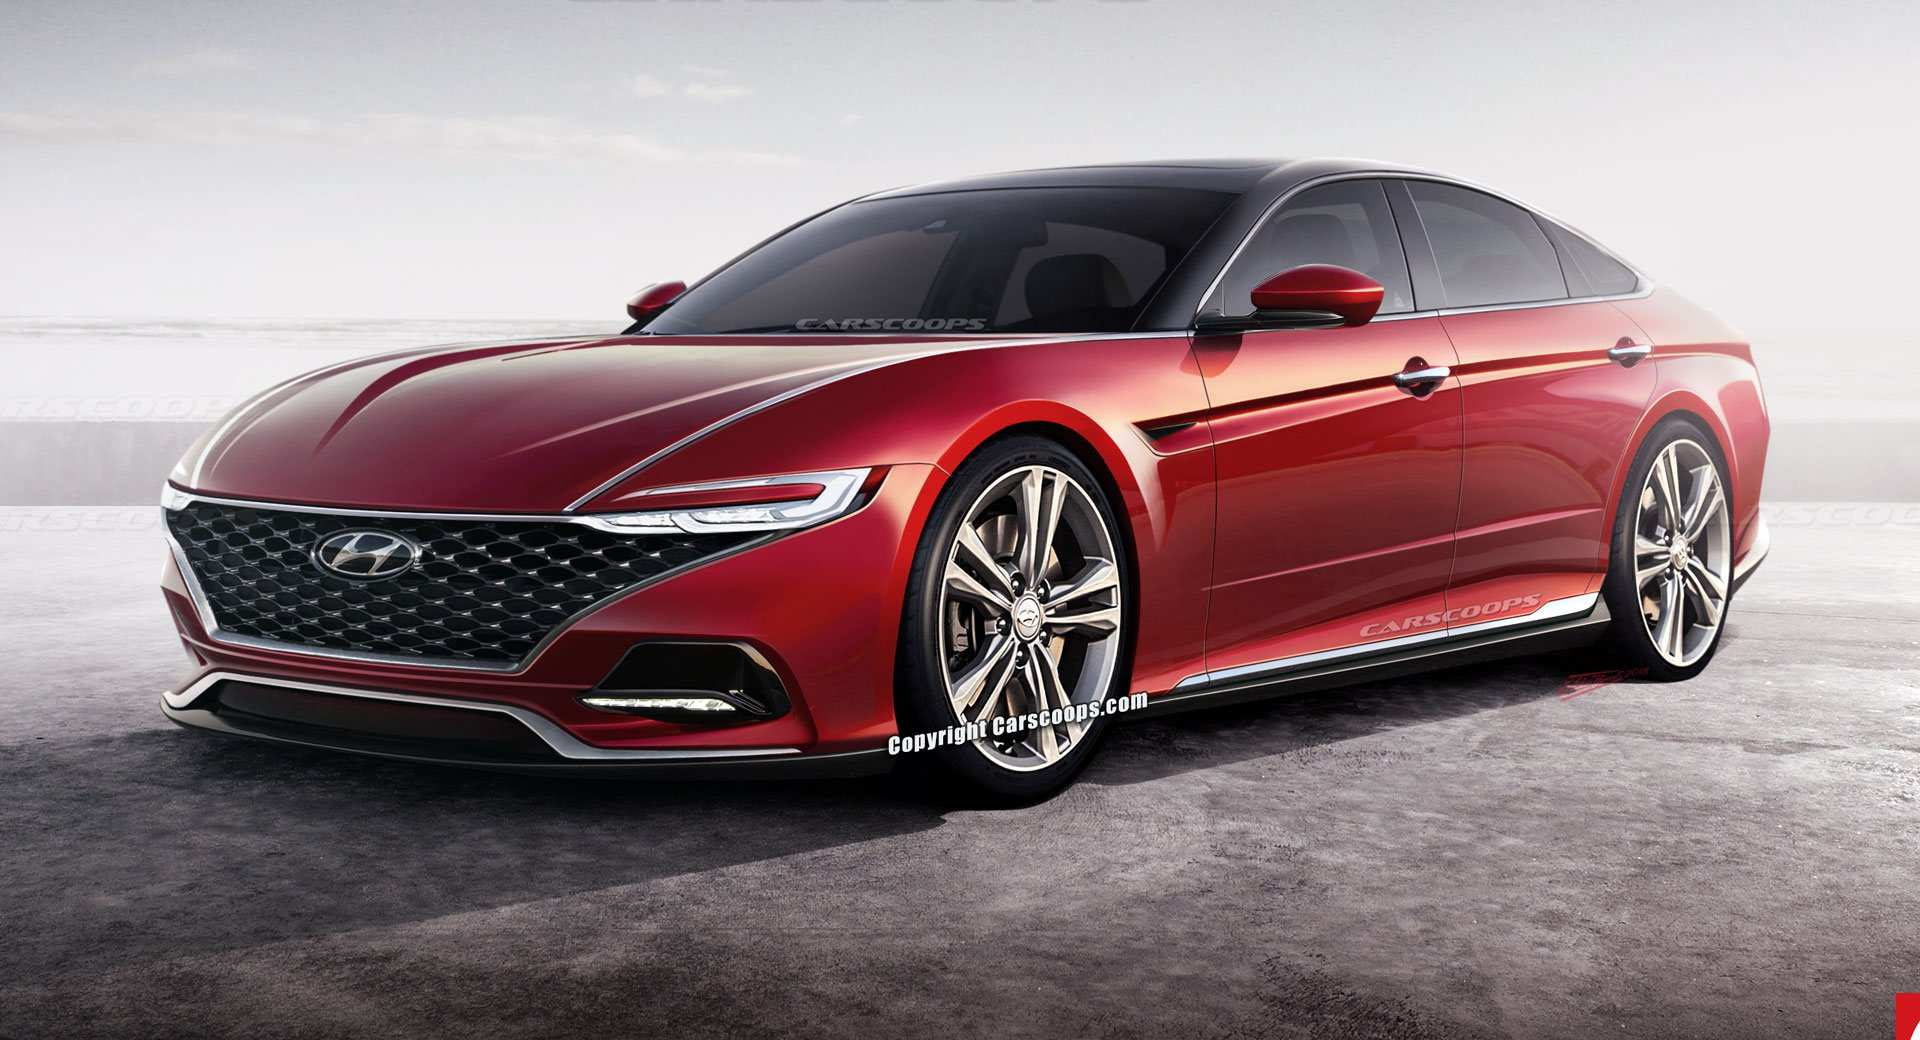 89 The 2020 Hyundai Sonata Redesign Exterior And Interior